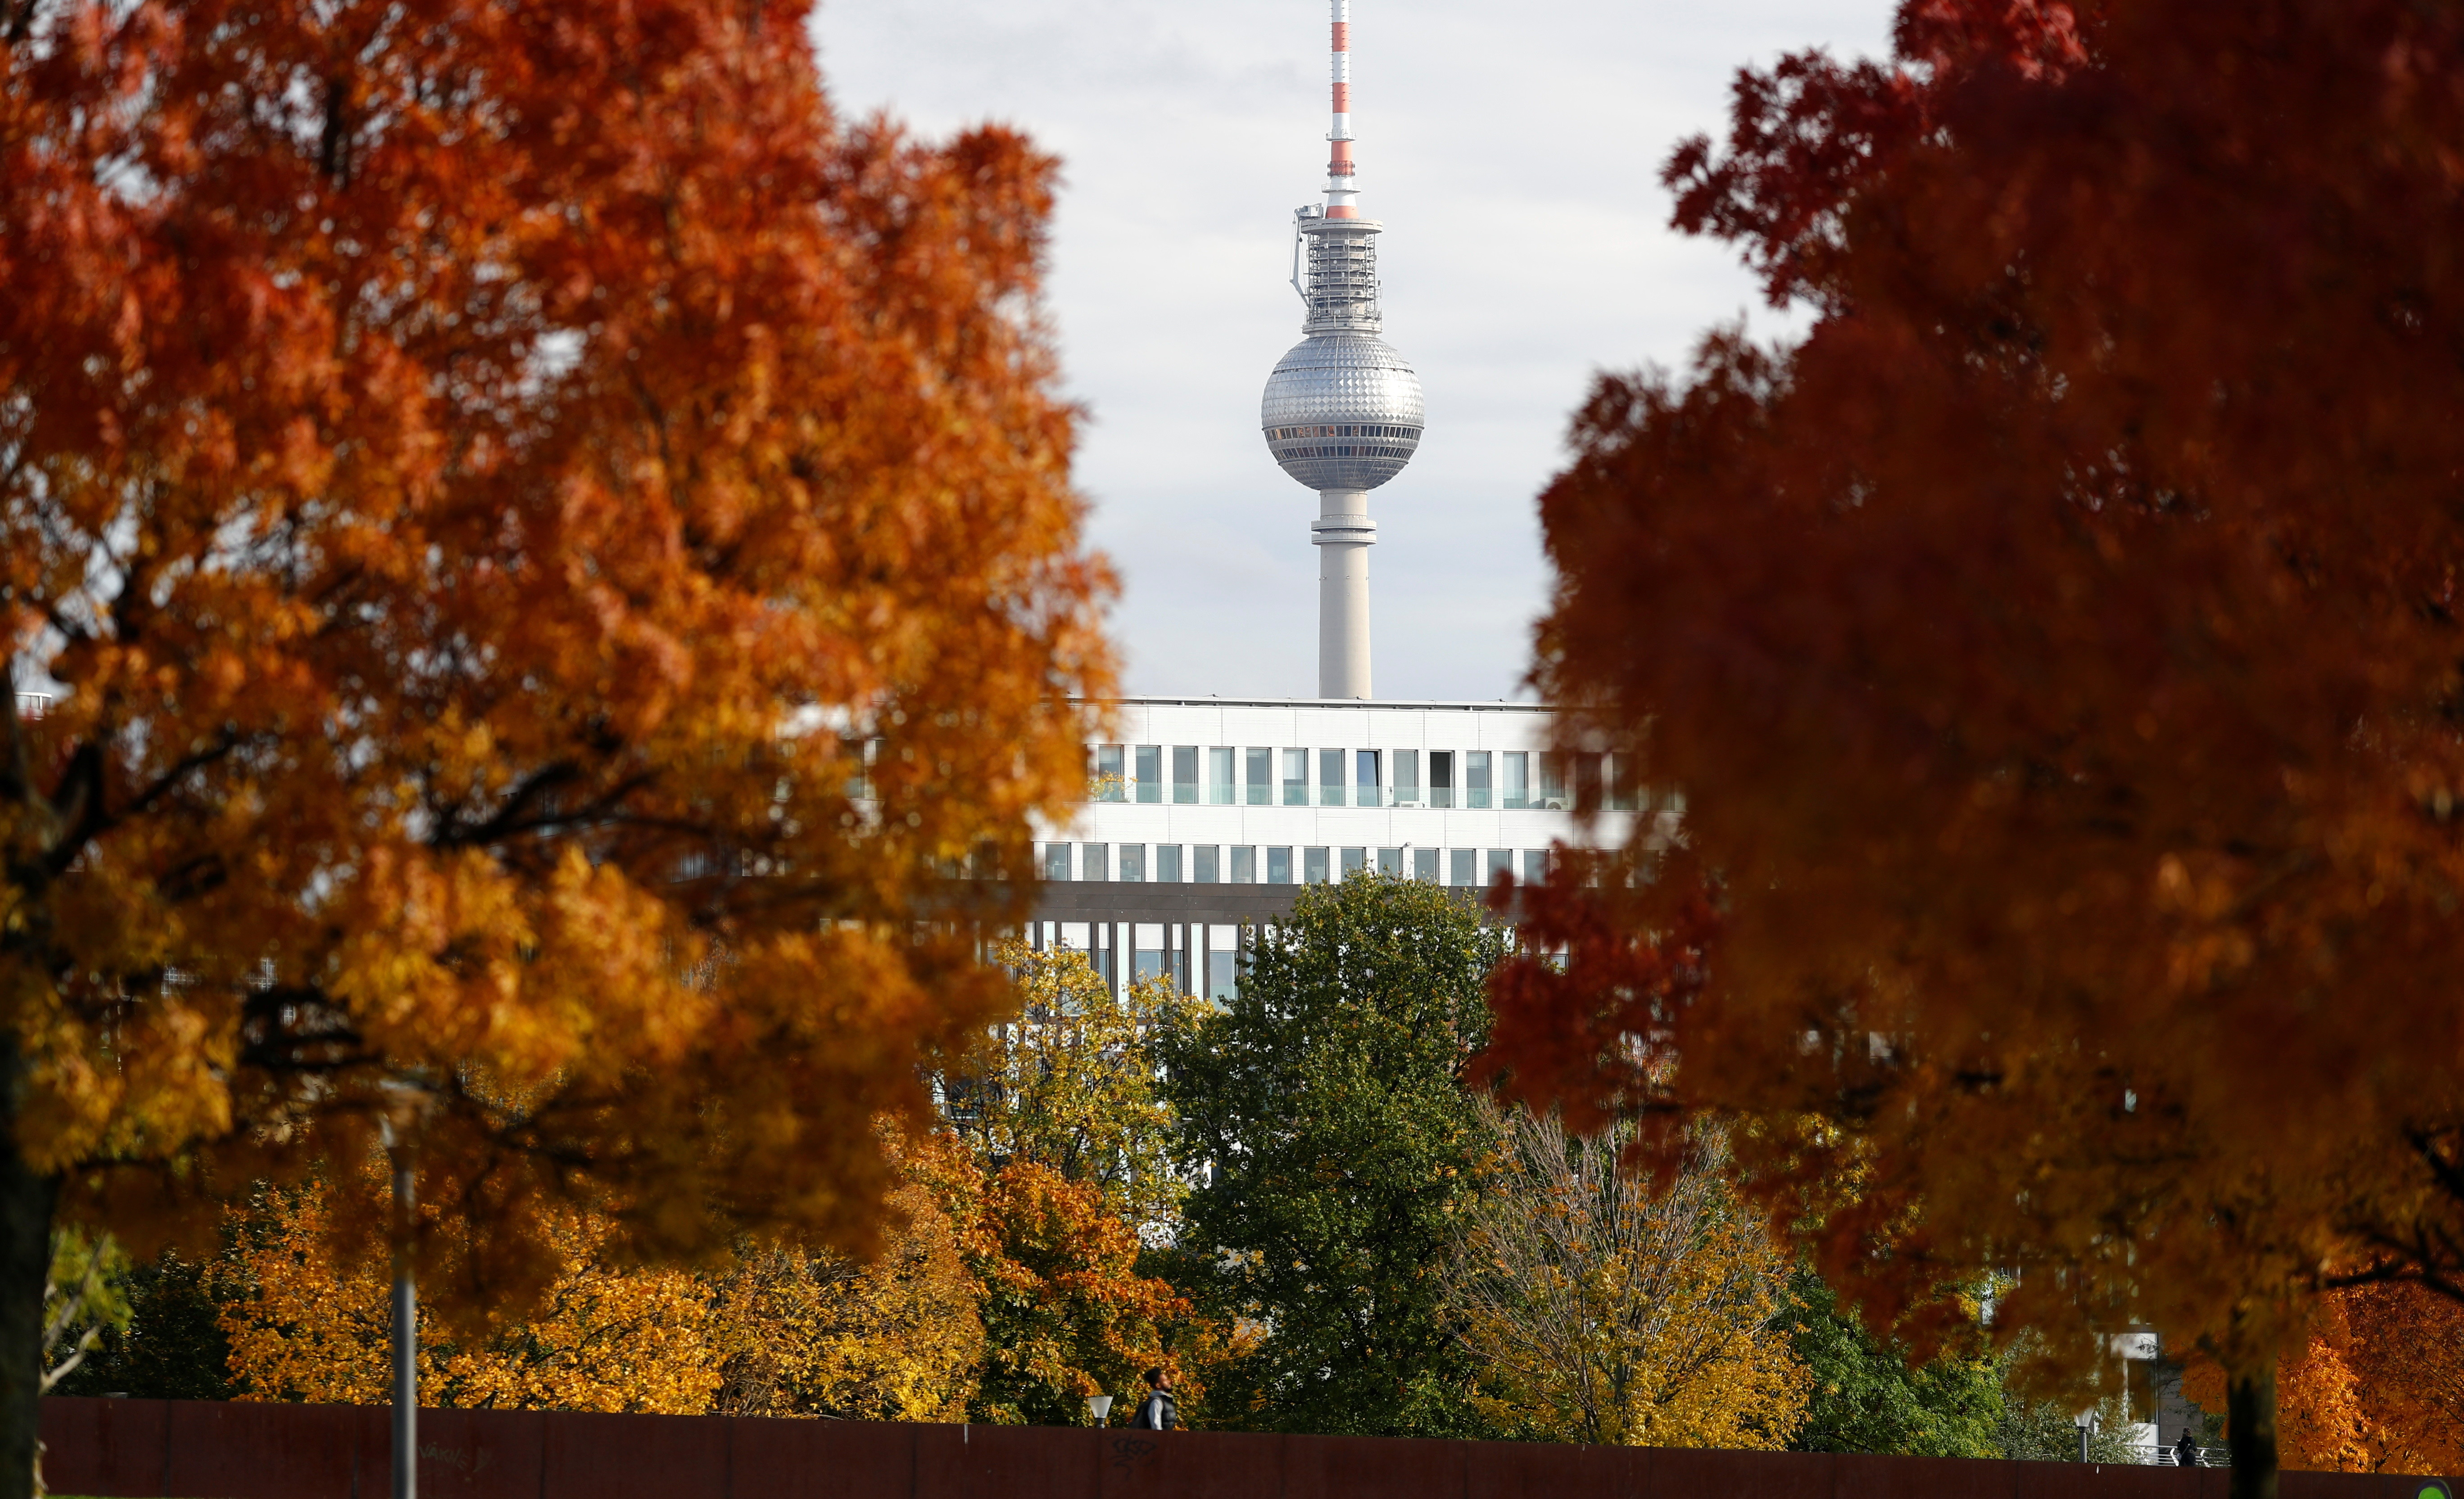 The television tower is seen through Autumn trees, in Berlin, Germany, October 27, 2020. REUTERS/Fabrizio Bensch - RC20RJ9VUOX9